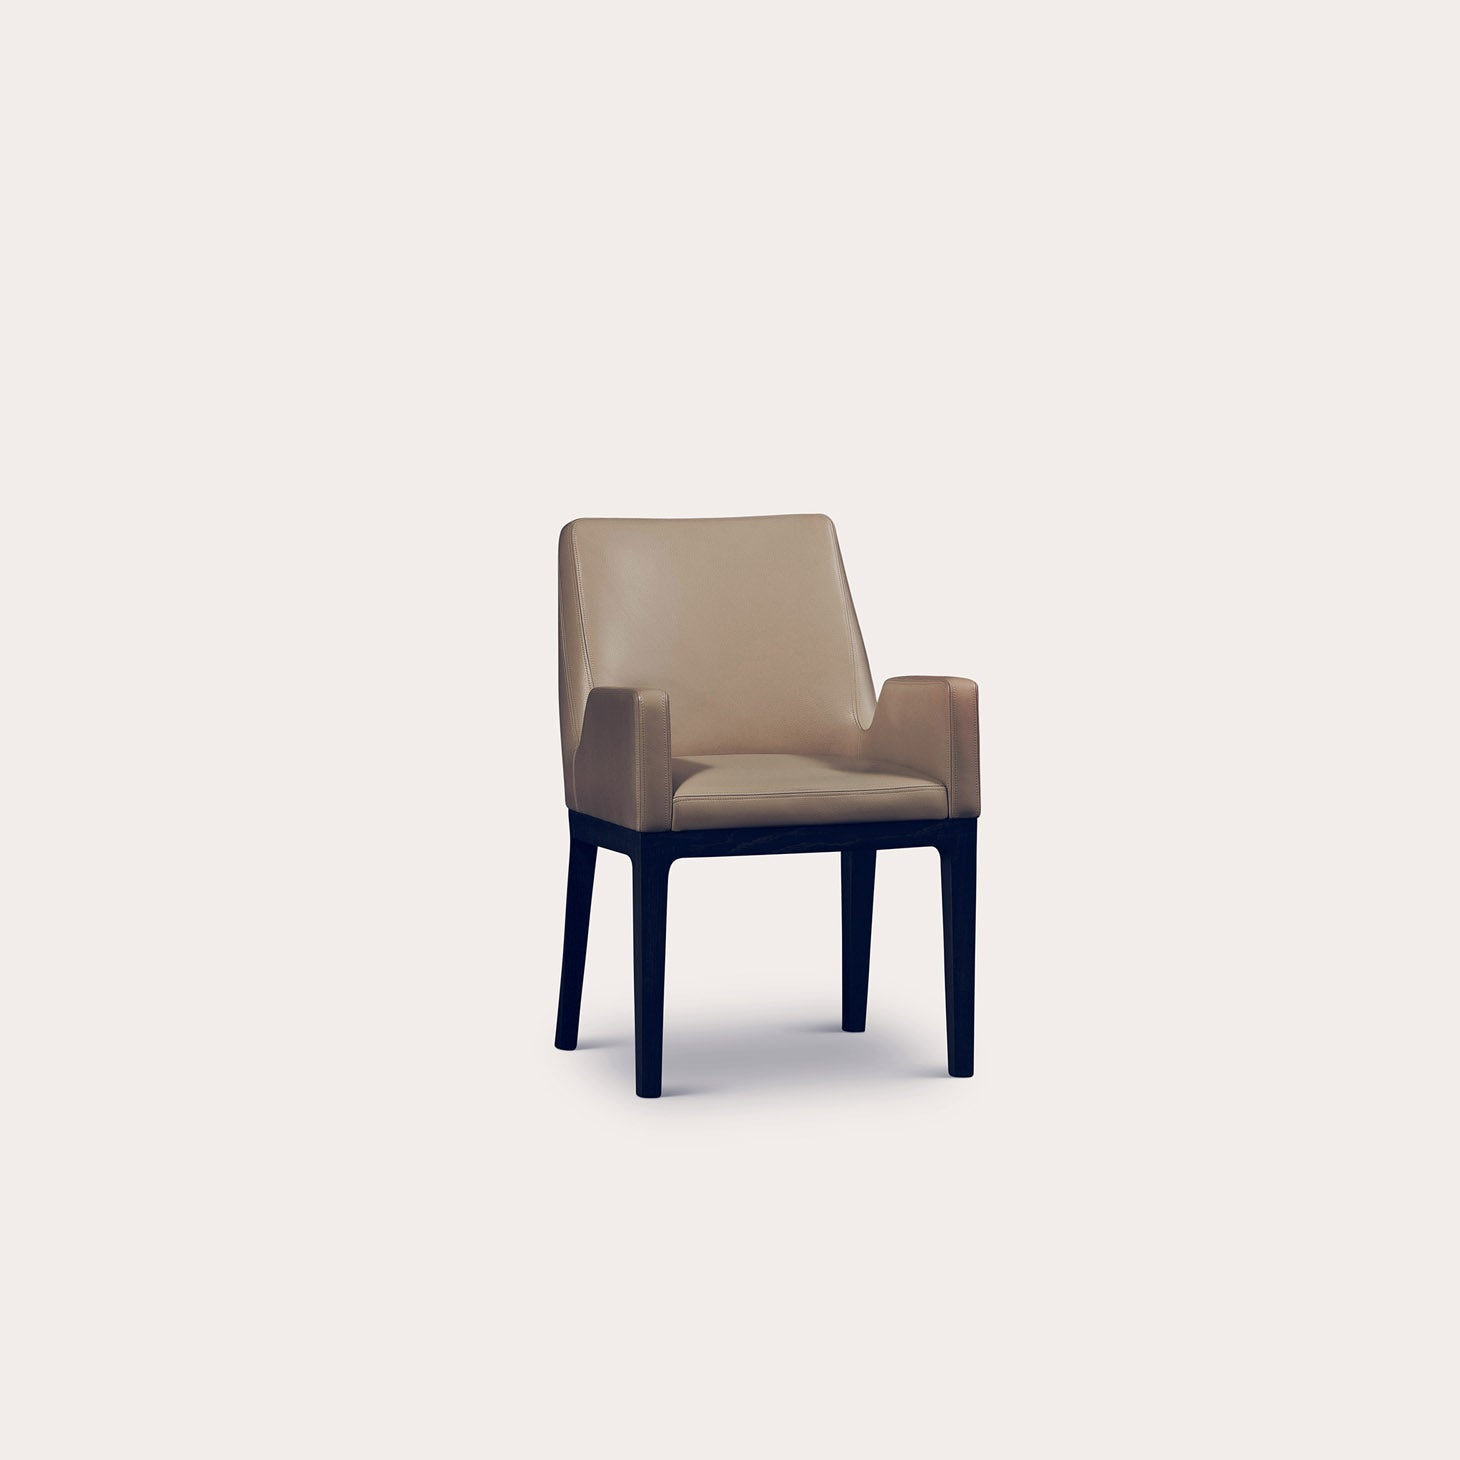 VERNON Seating Bruno Moinard Designer Furniture Sku: 773-120-10005